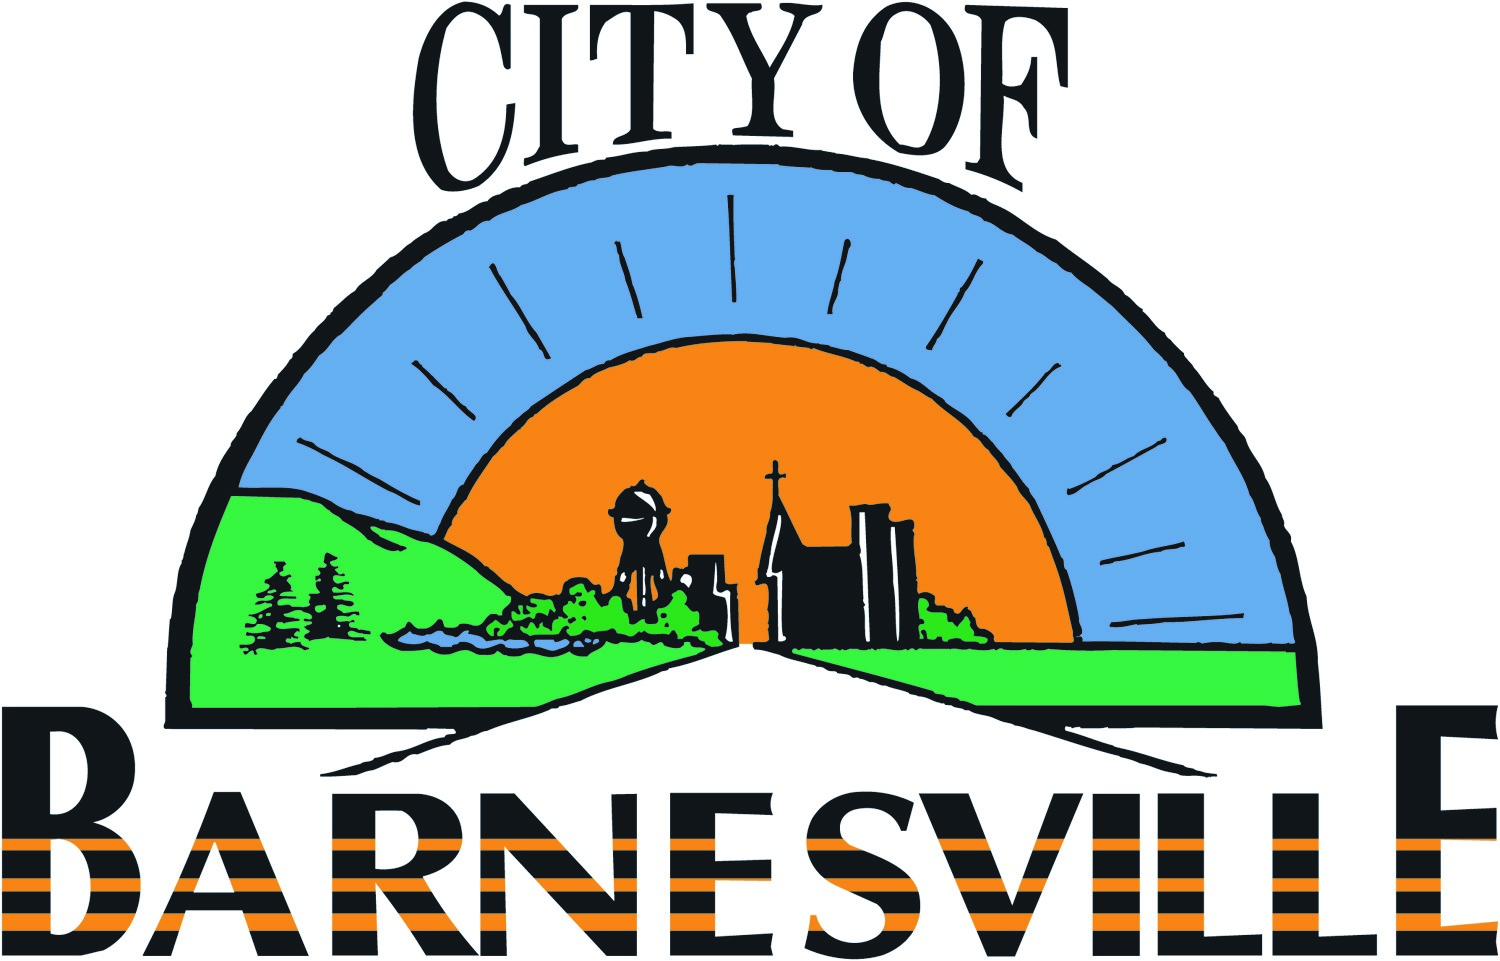 Barnesville city logo color.jpg